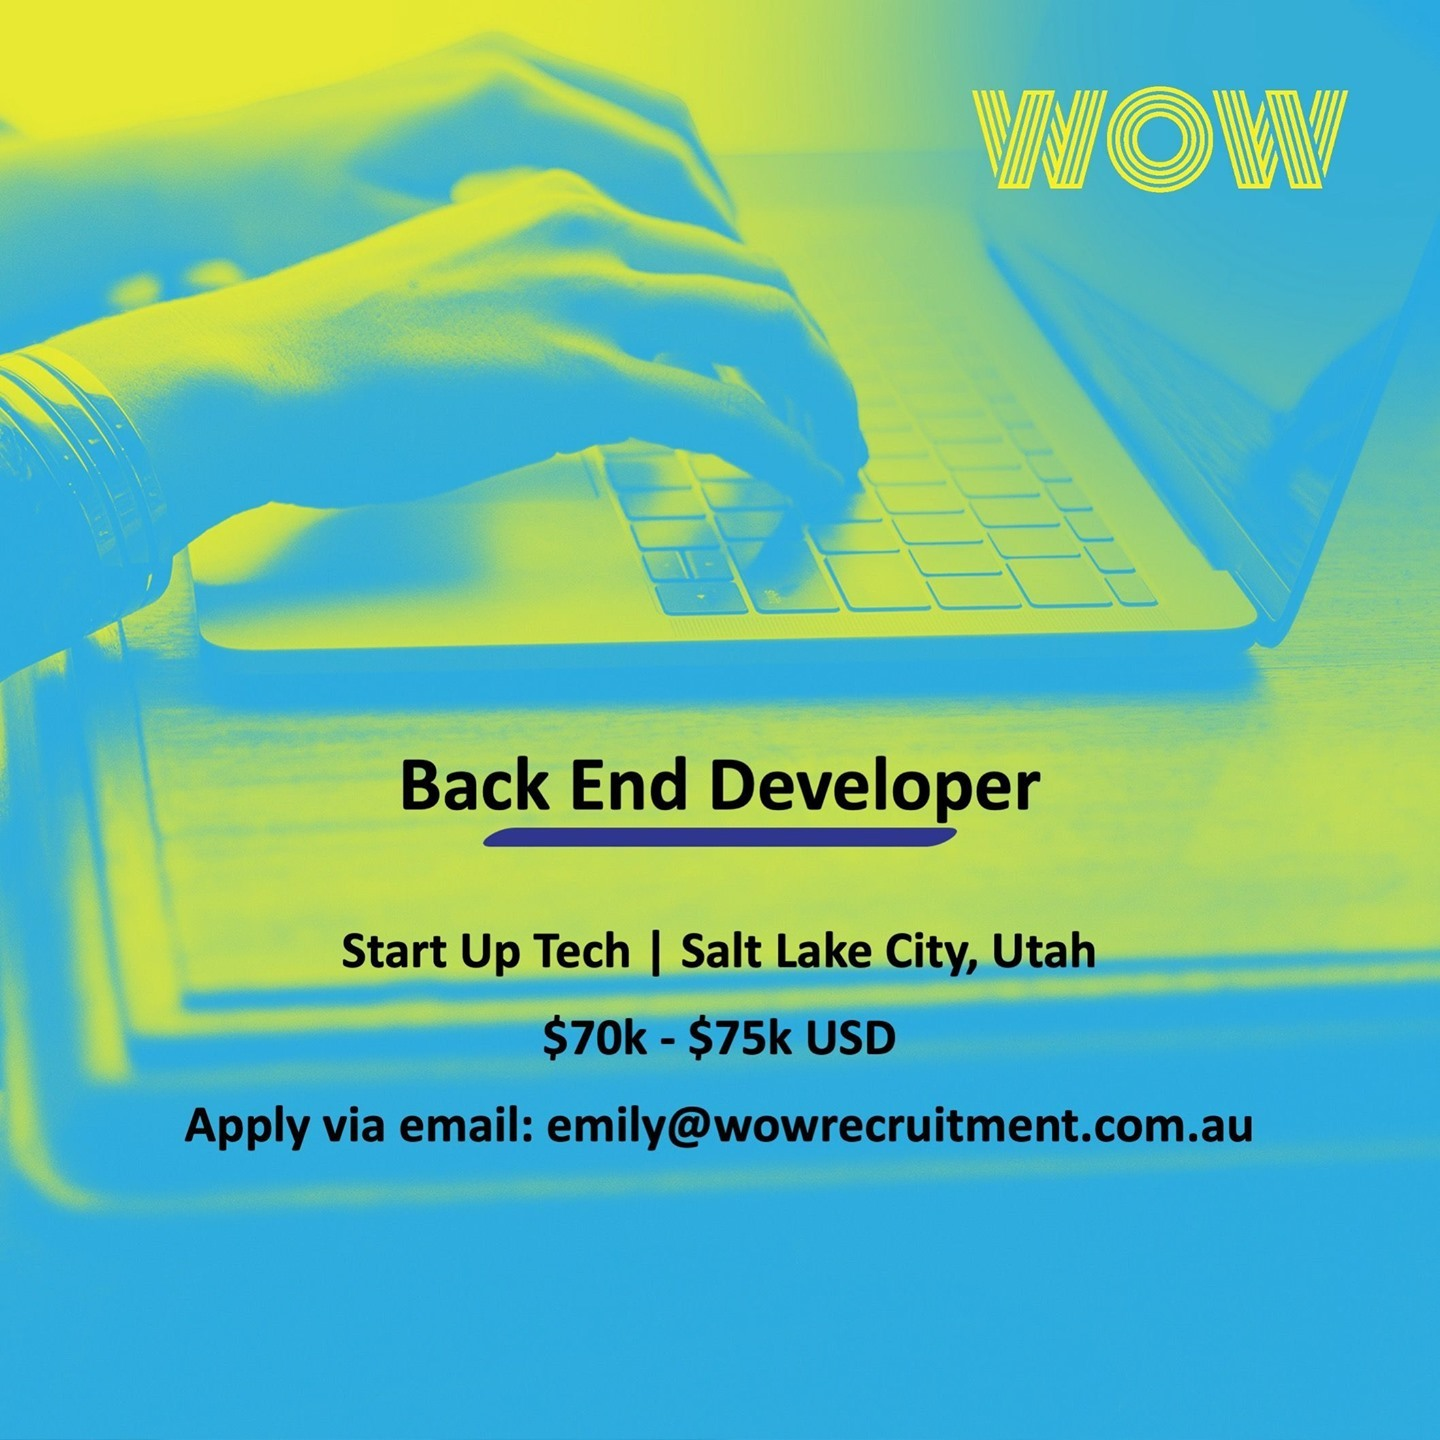 WOW is looking for a Back End Software Developer to join a rapidly growing tech start-up in Salt Lake City! Reach out to Emily McLeod via email for more info! 🖥� #DoWhatYouLove #WorkHappy